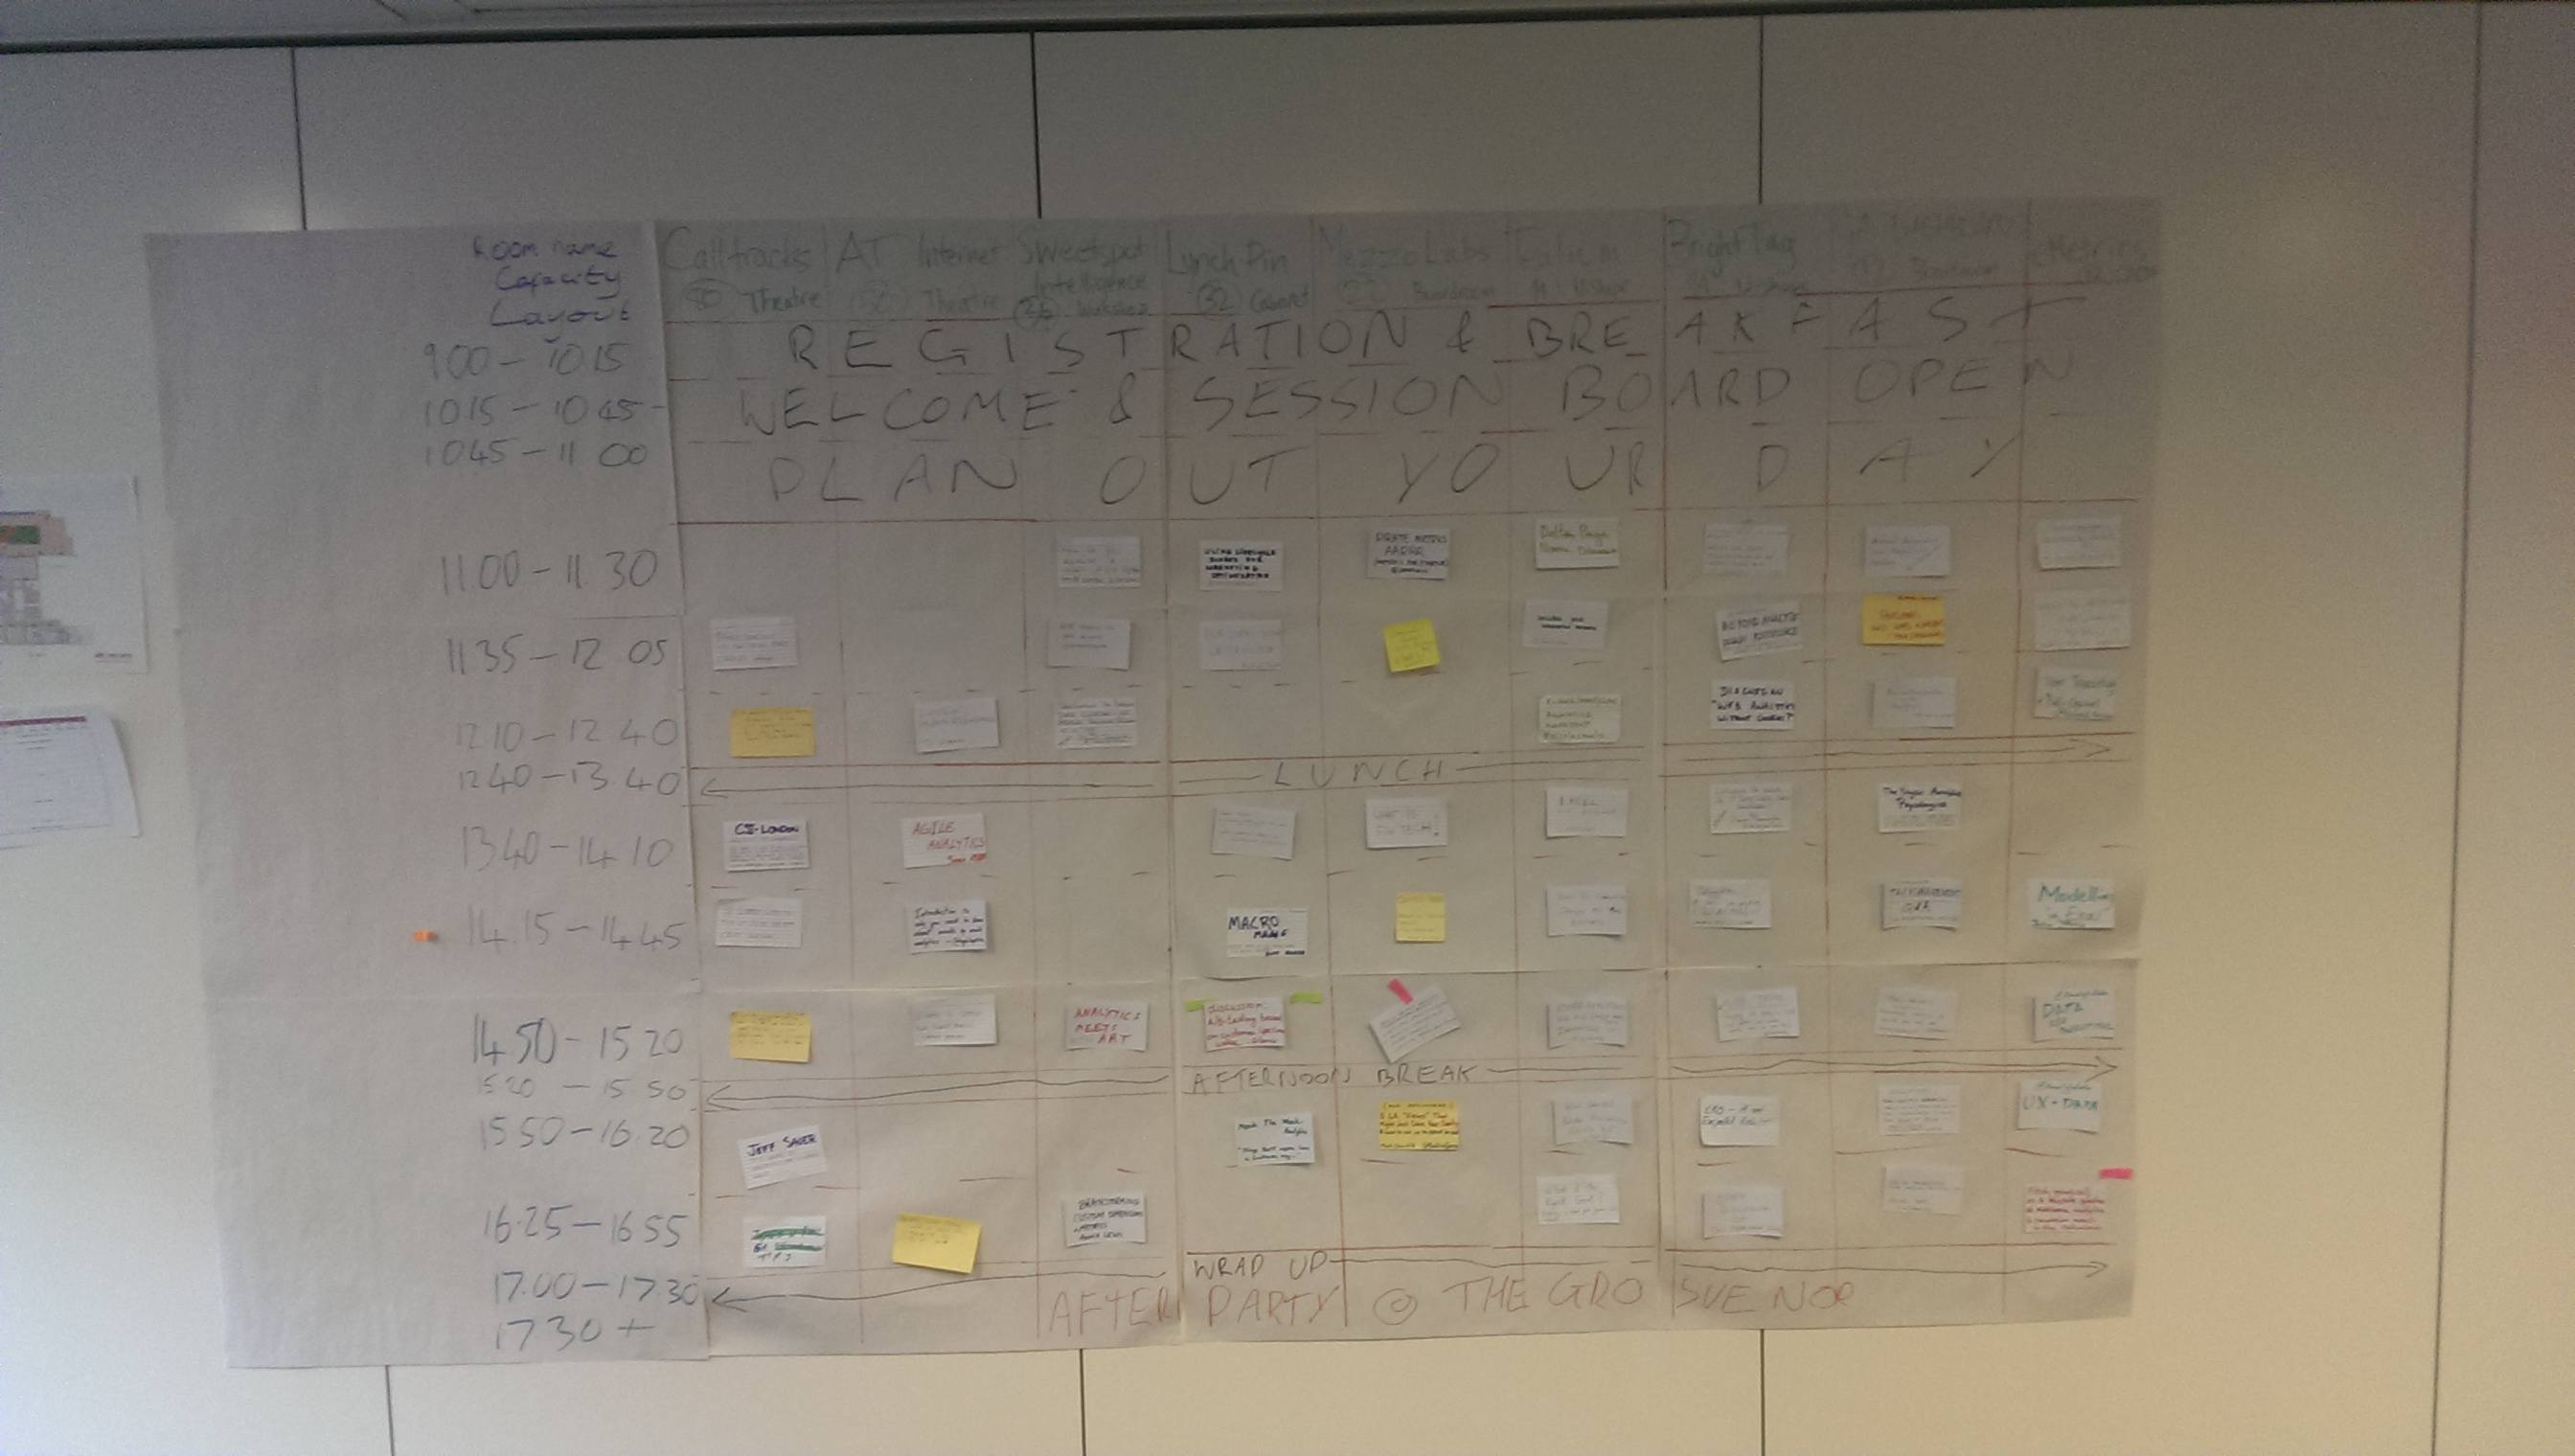 measurecamp iv board